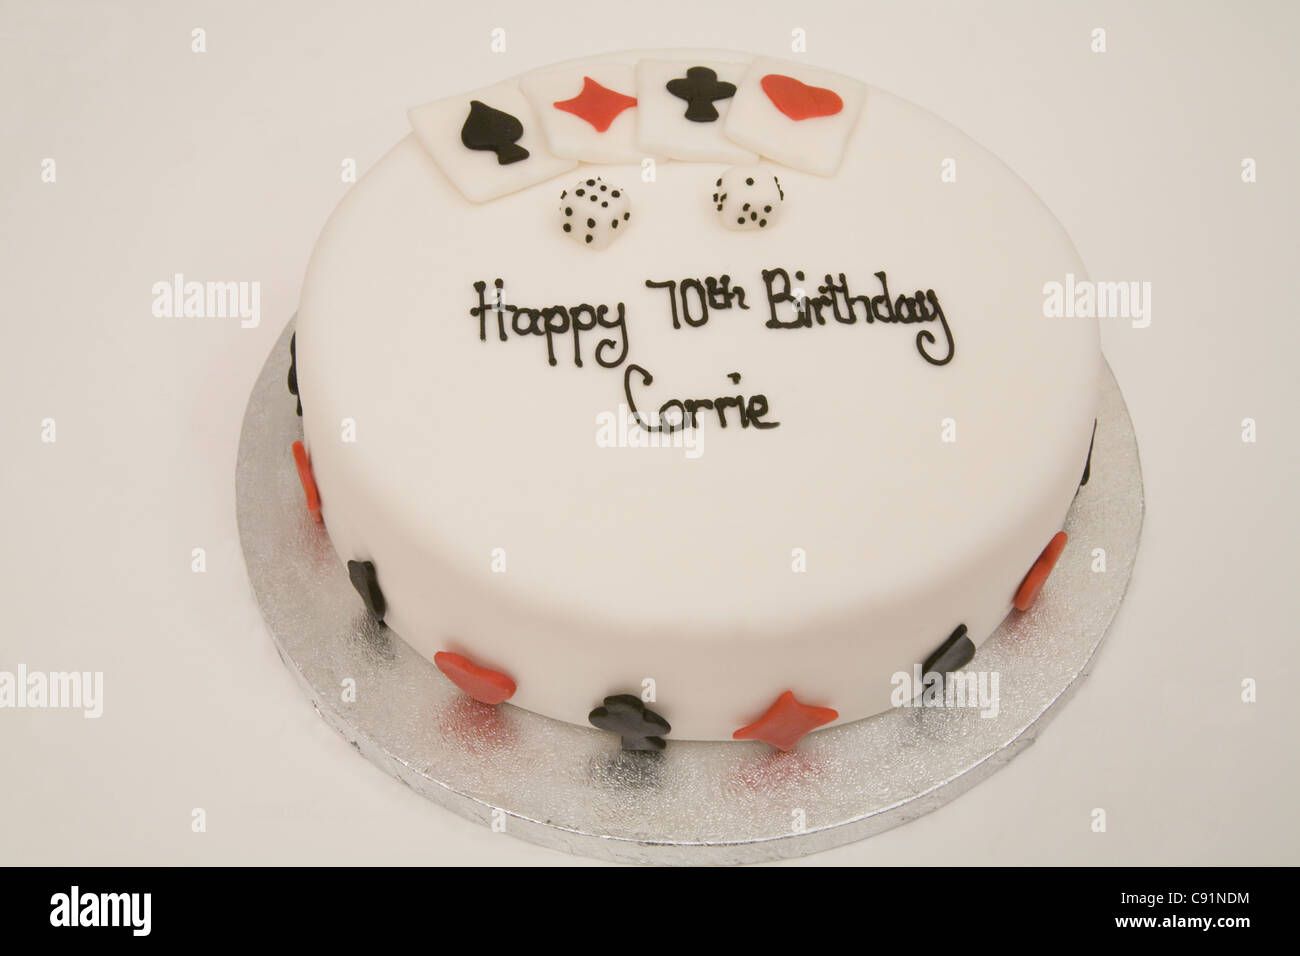 Iced 70th Birthday Cake Decorated With Playing Cards And Dice